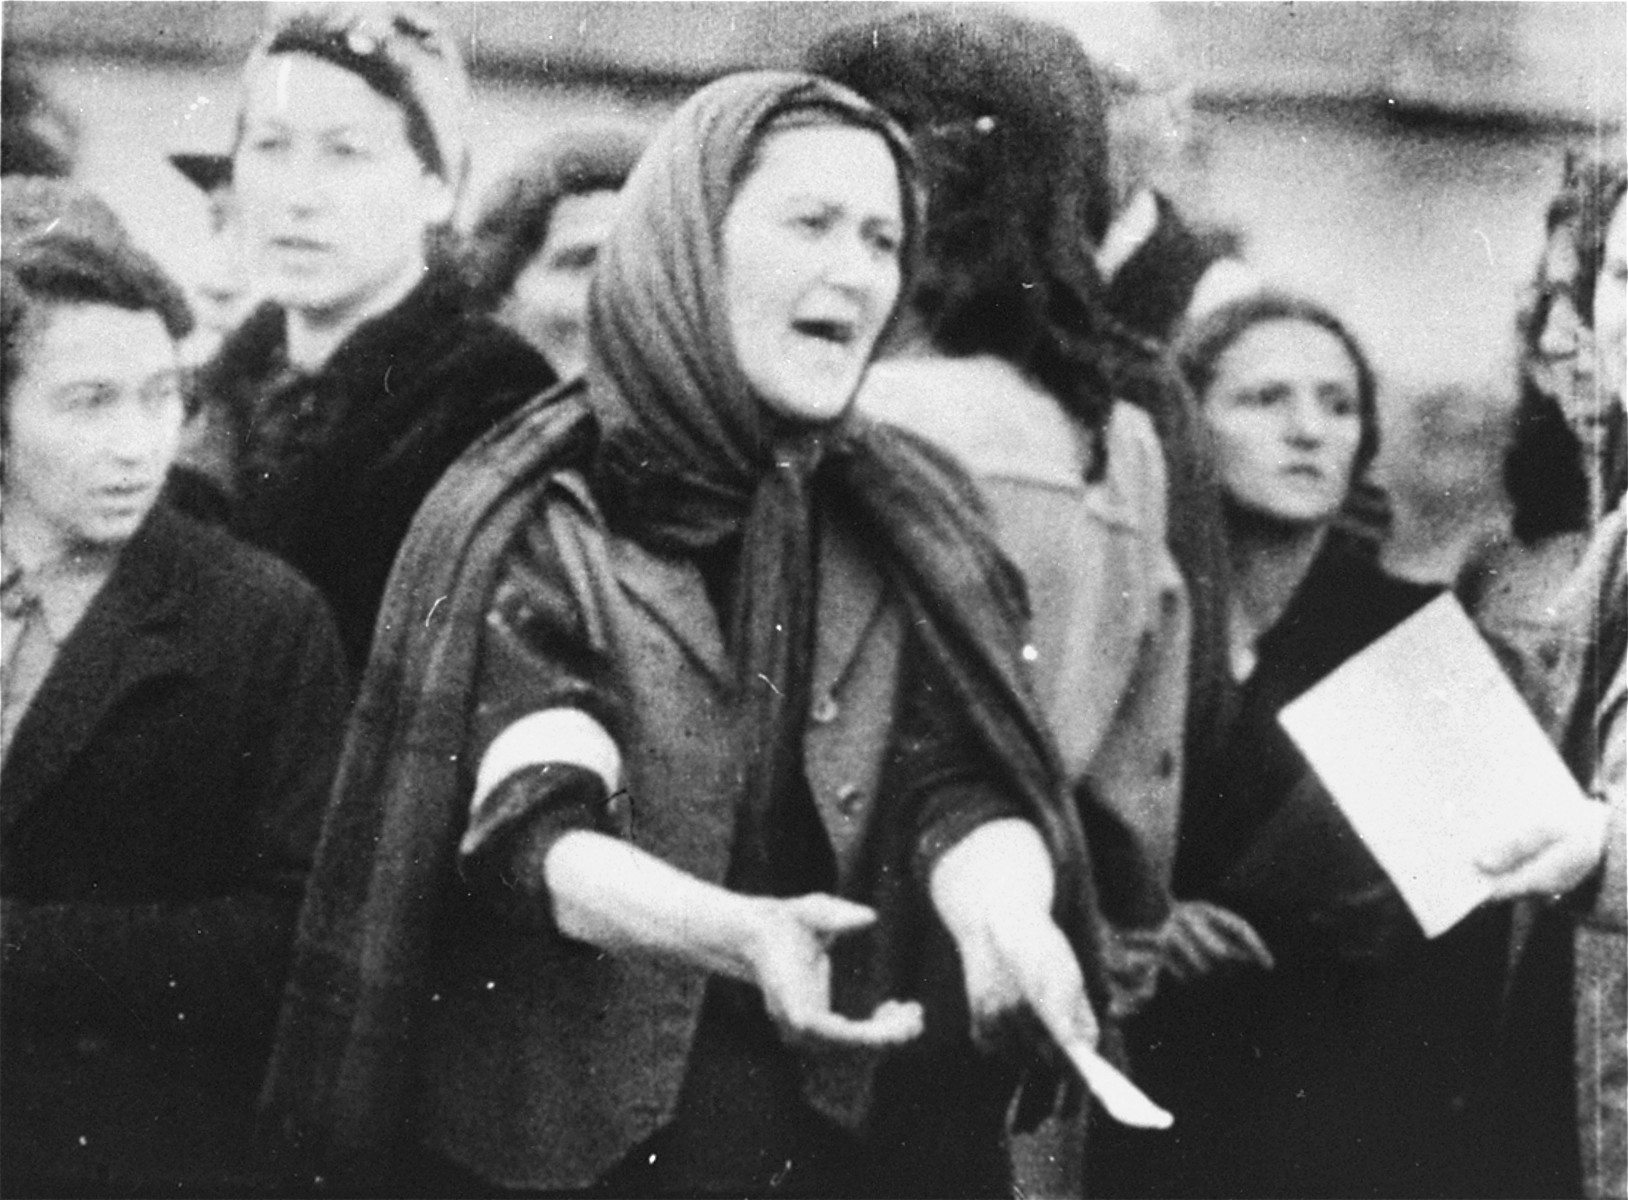 Jews during a deportation from the Warsaw Ghetto.